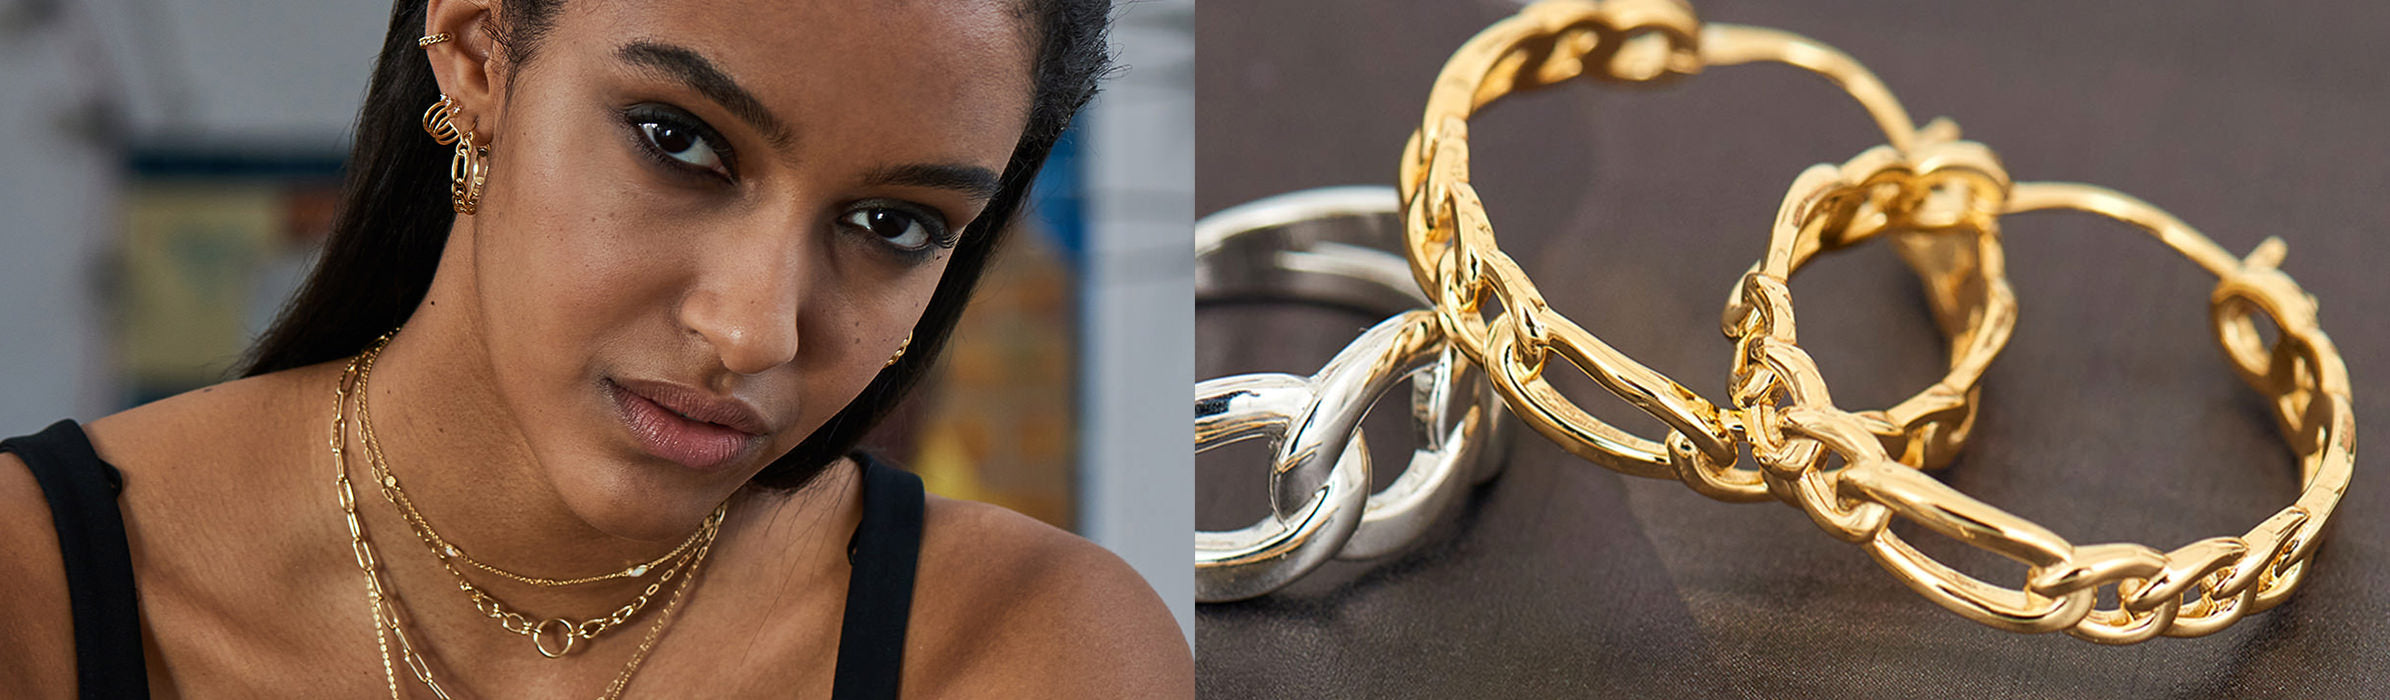 Chain Reactions Jewellery Collection by Ania Haie